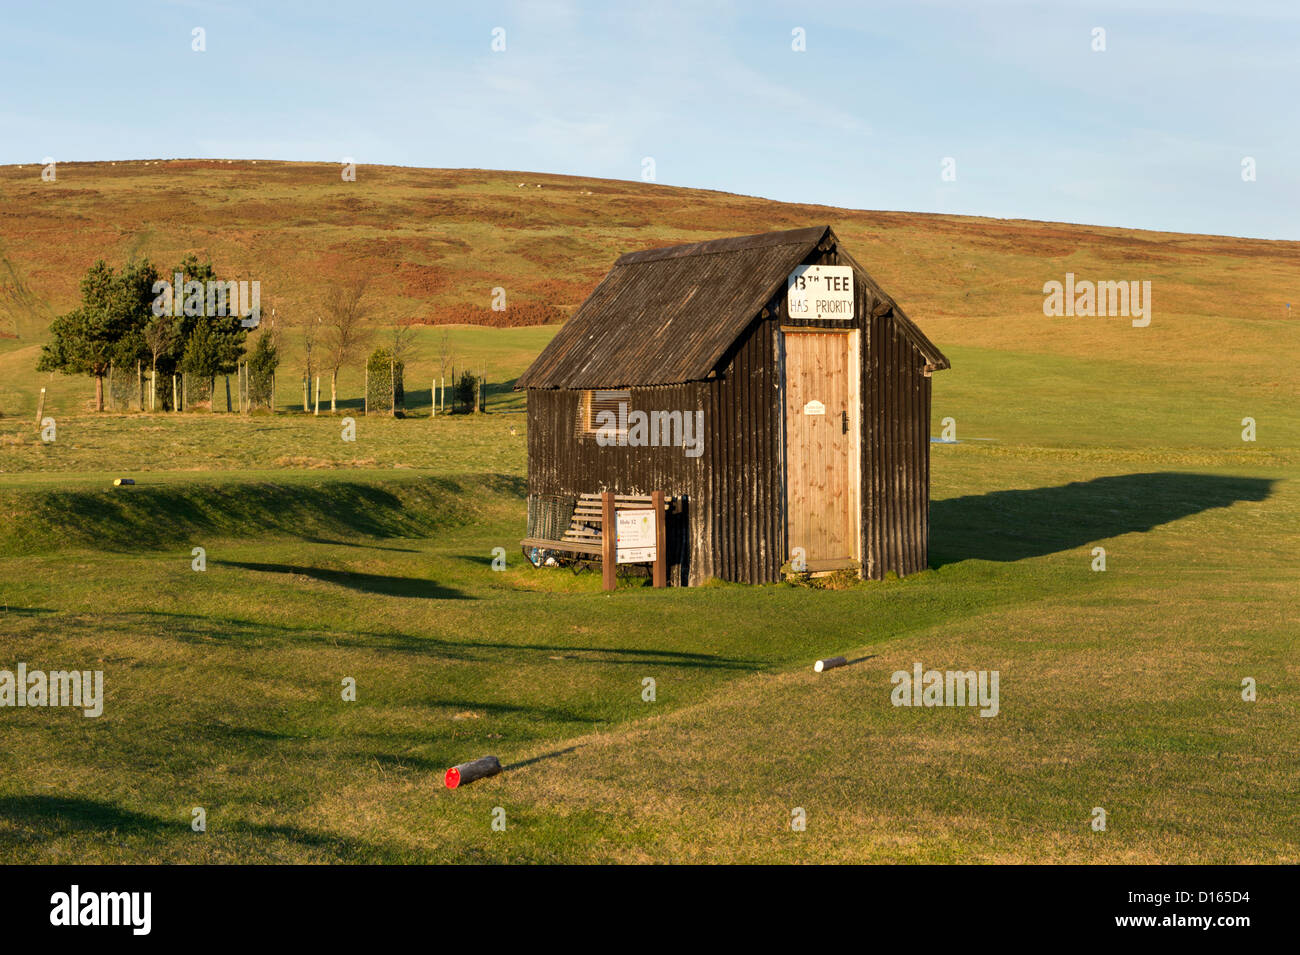 The 13th Tee on the scenic Church Stretton Golf Course, Shropshire. - Stock Image